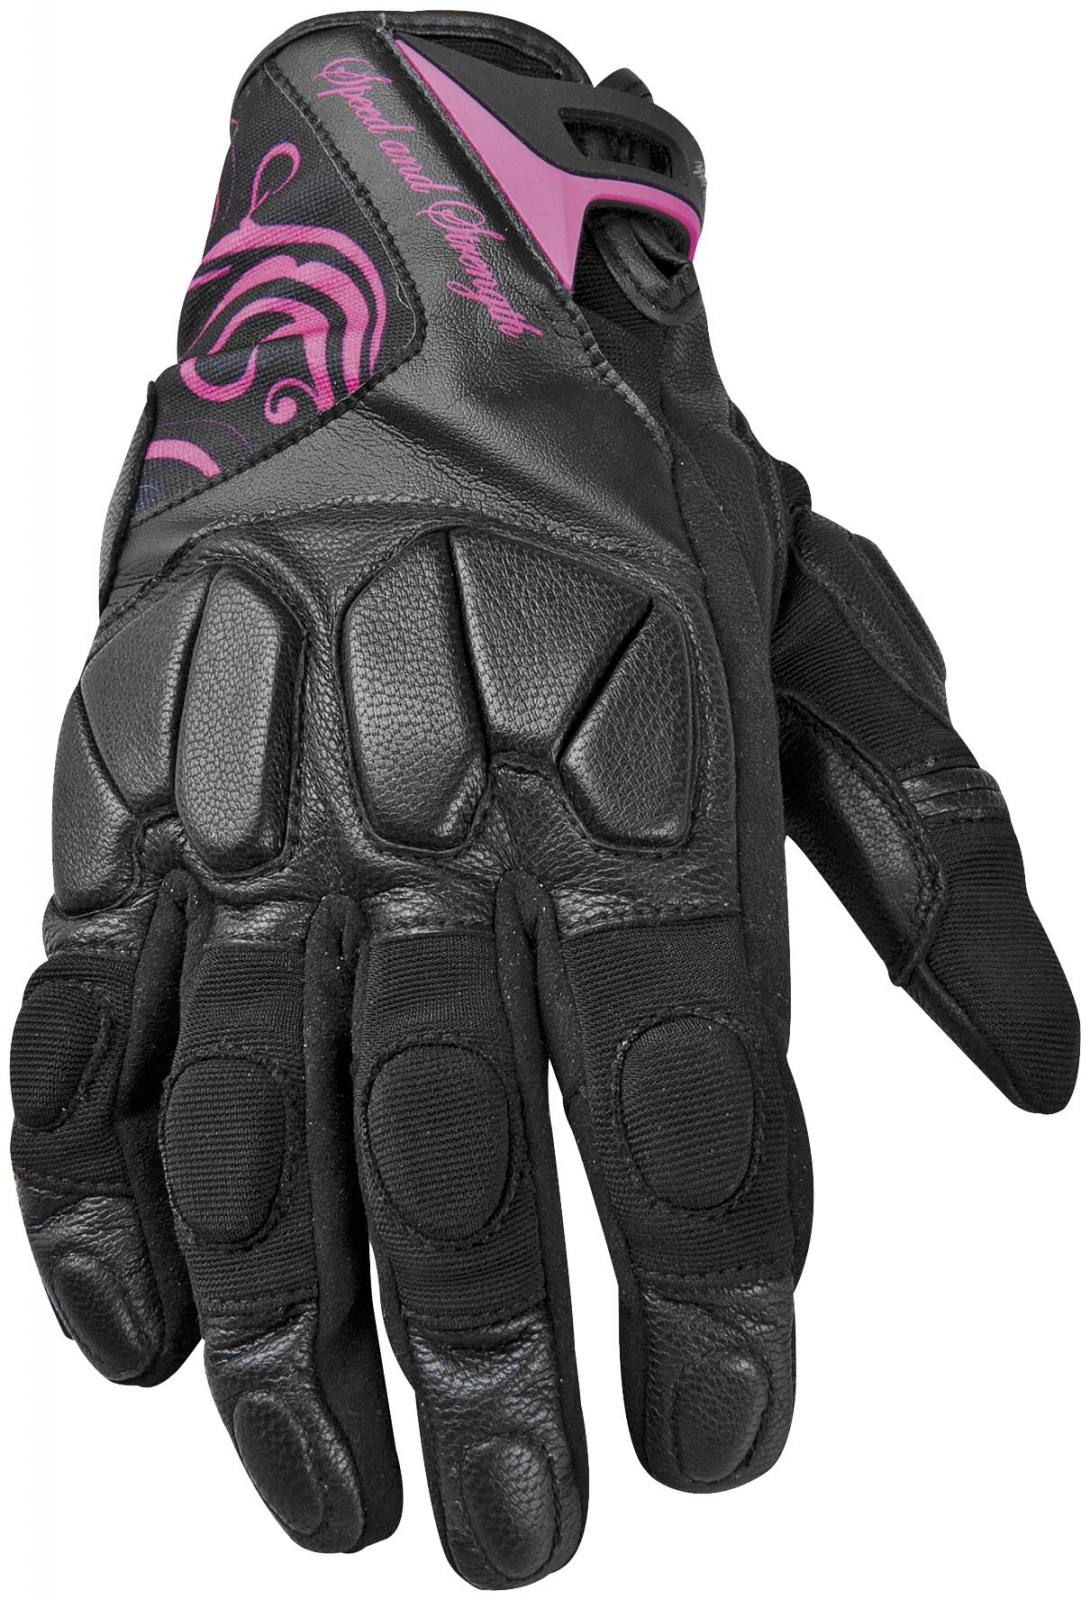 Ladies leather gloves xl - Cat Outa Hell Leather And Textile Womens Gloves For Sale In Covington Oh Tike S Cycle Shop 888 341 1138